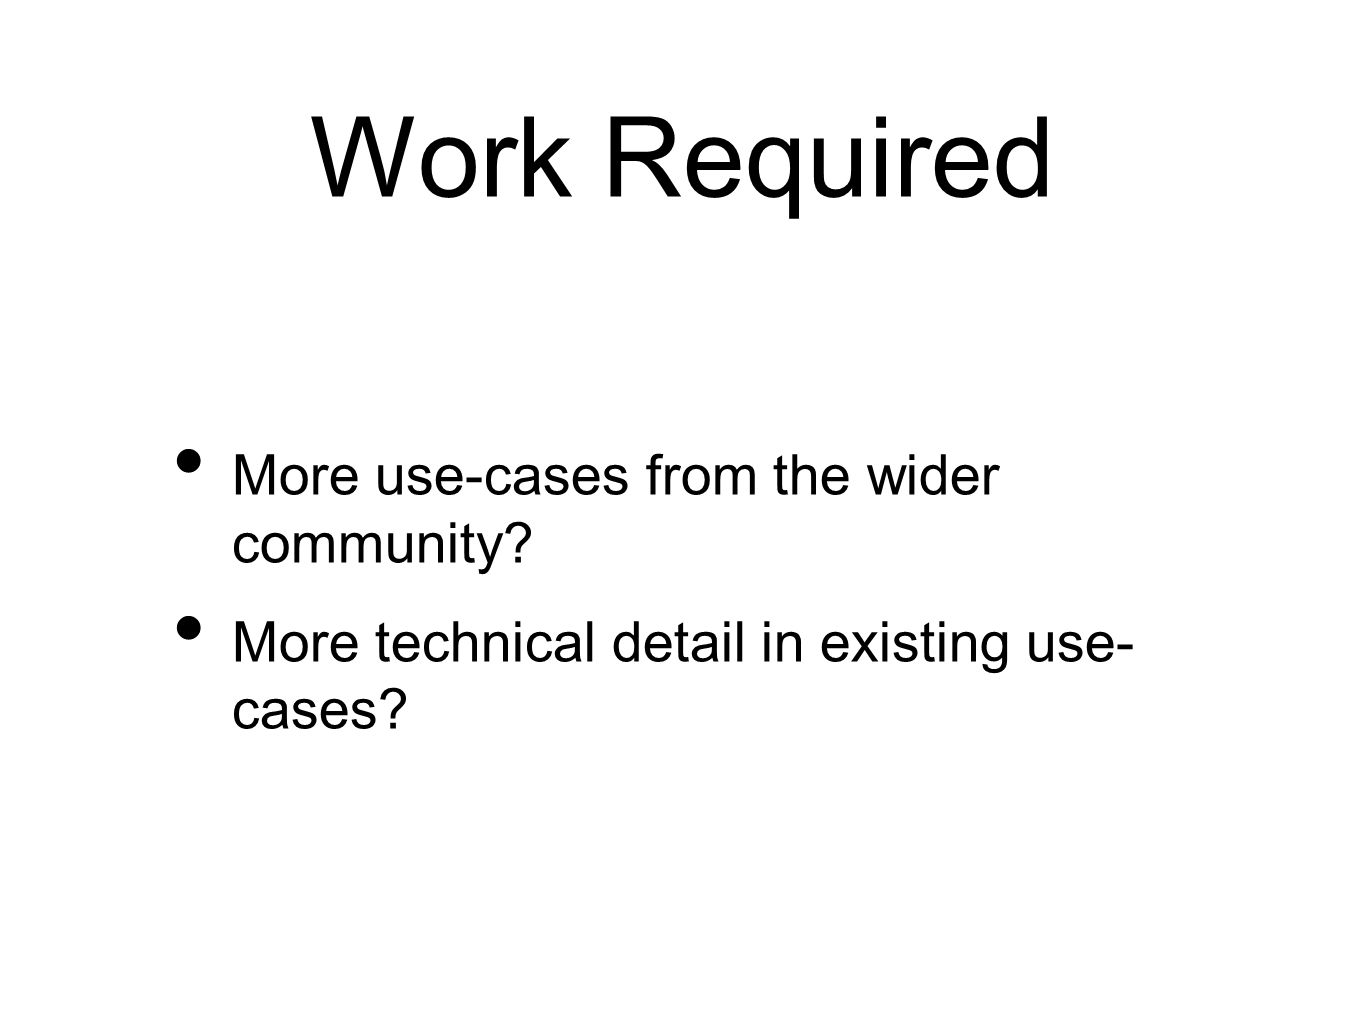 Work Required More use-cases from the wider community.